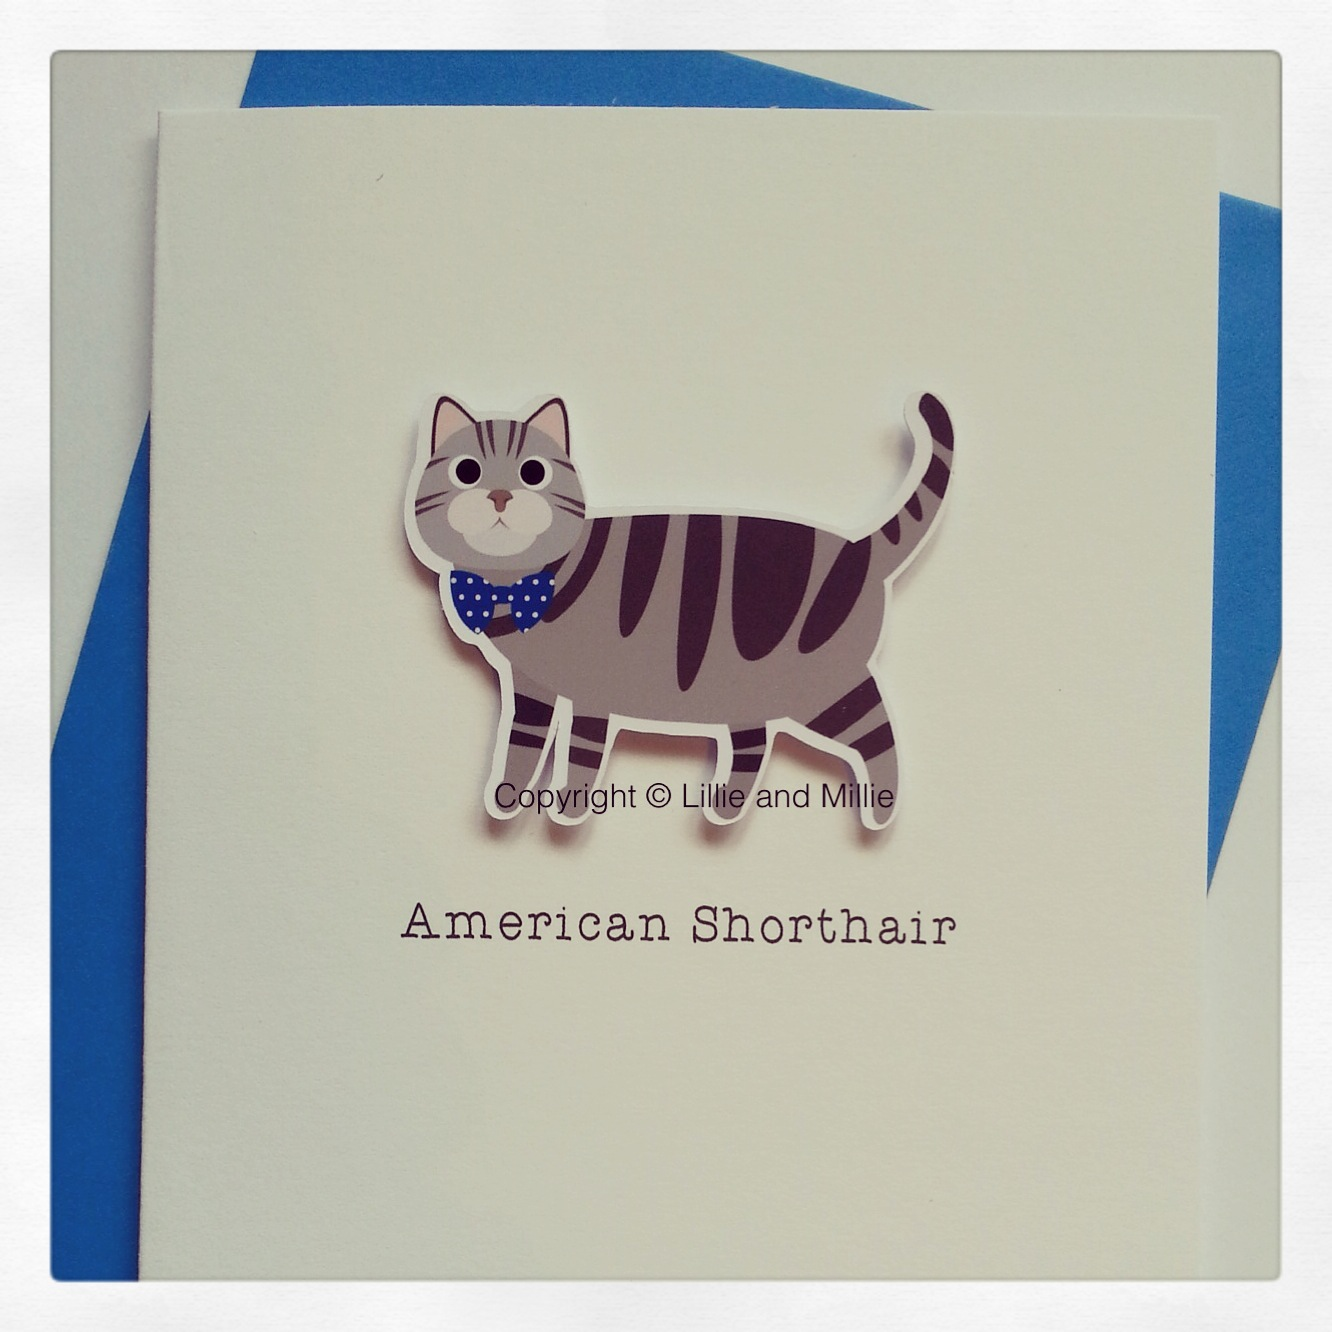 Cute and Cuddly American Shorthair Cat Card